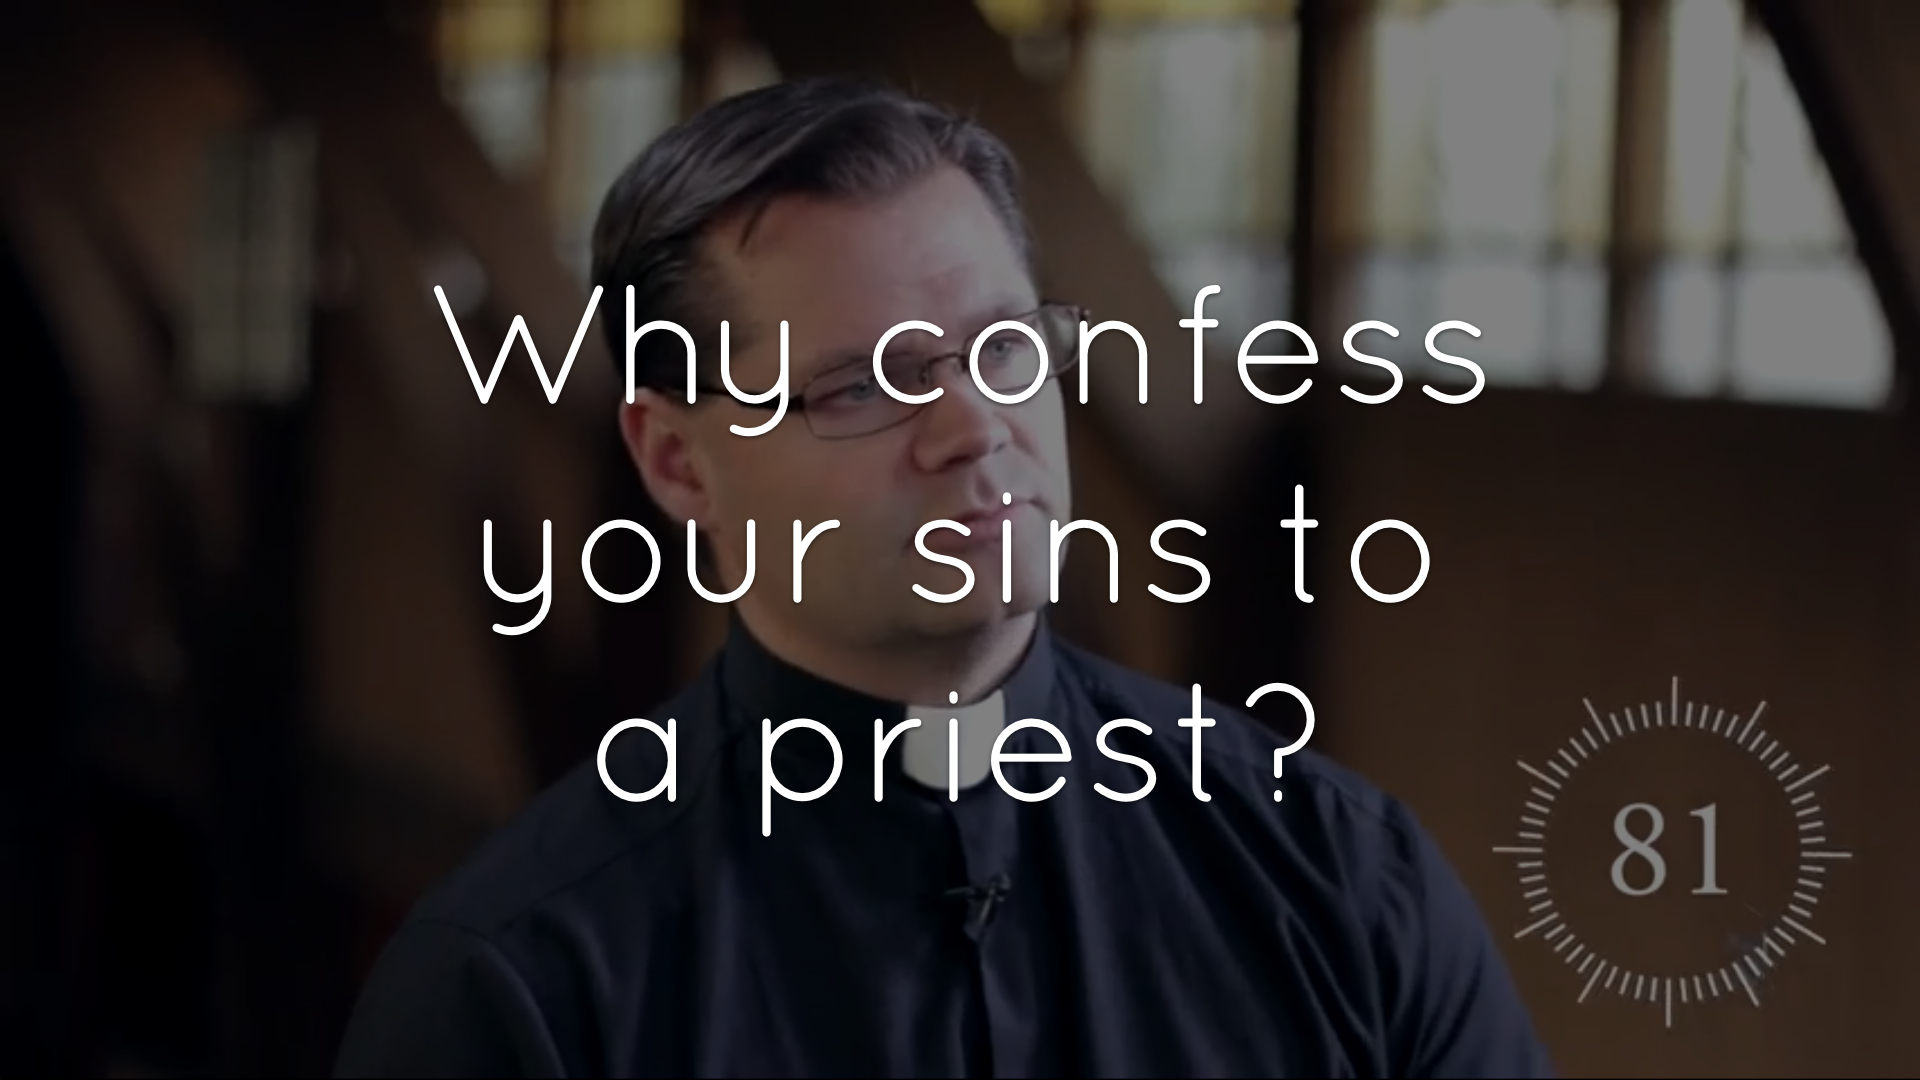 Why do Catholics confess sins to a priest?